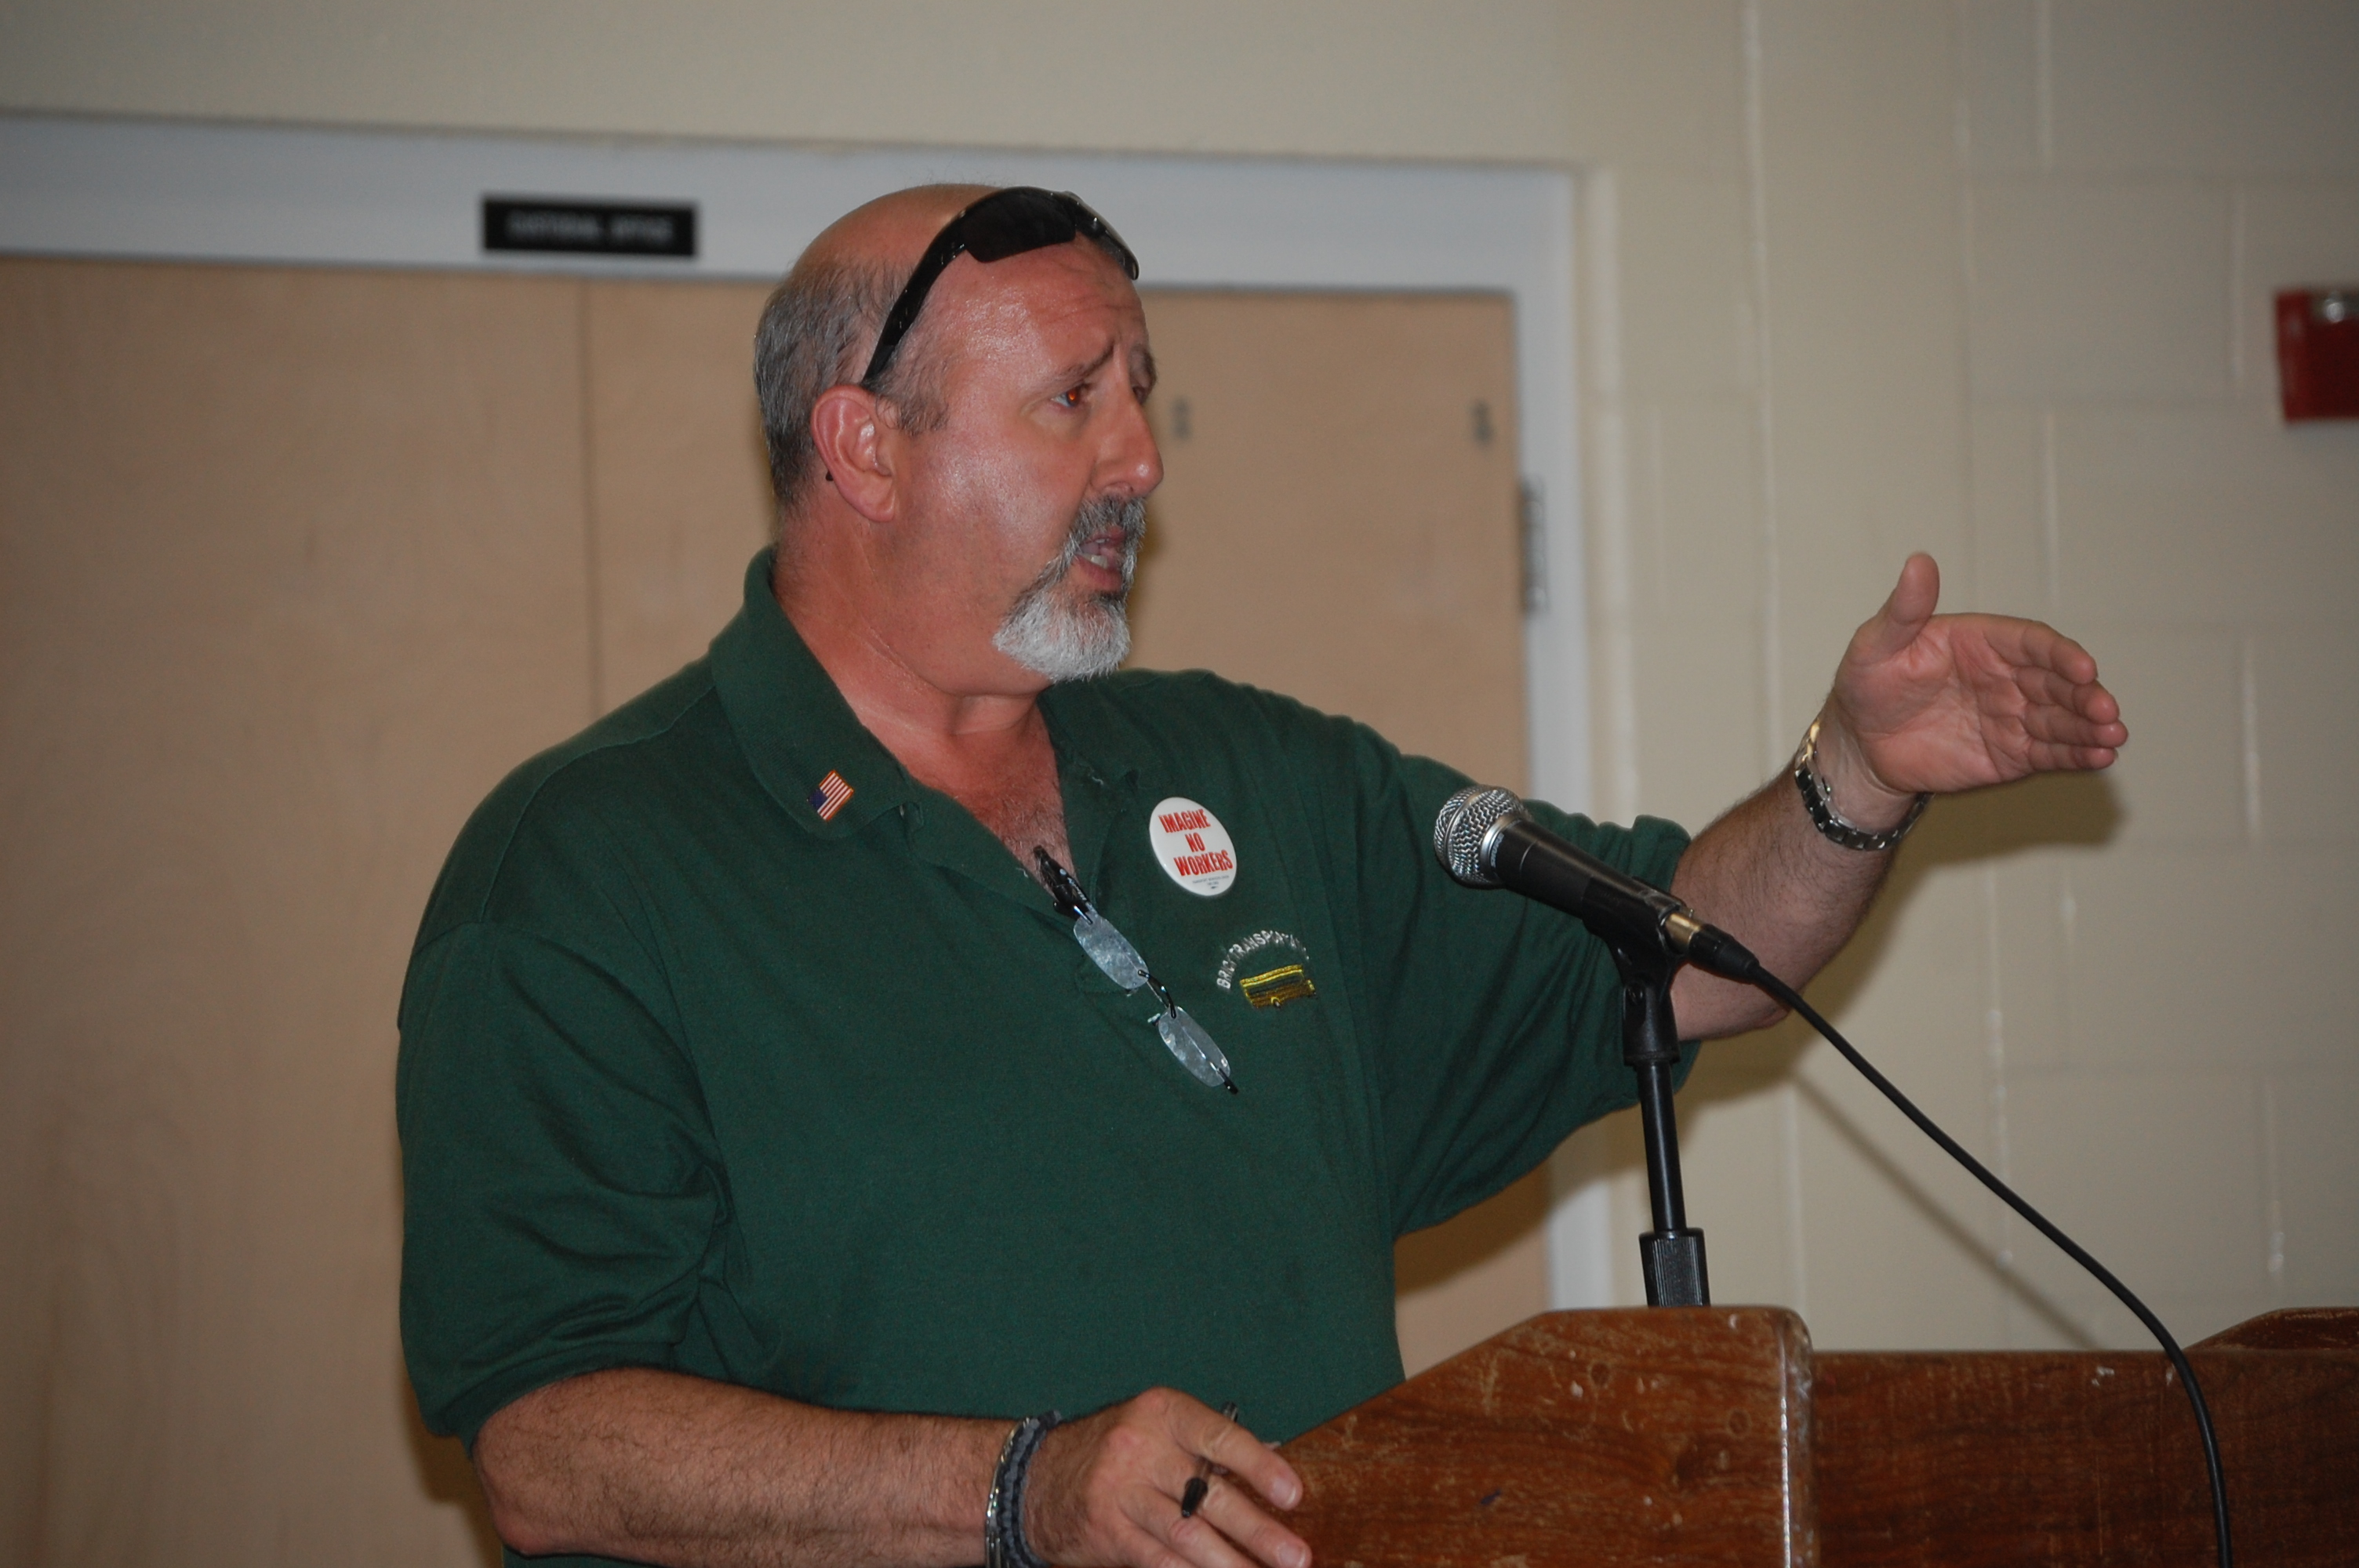 Greg Cohen, a Brick school bus driver and union leader, addresses the Board of Education June 15, 2015. (Photo: Daniel Nee)